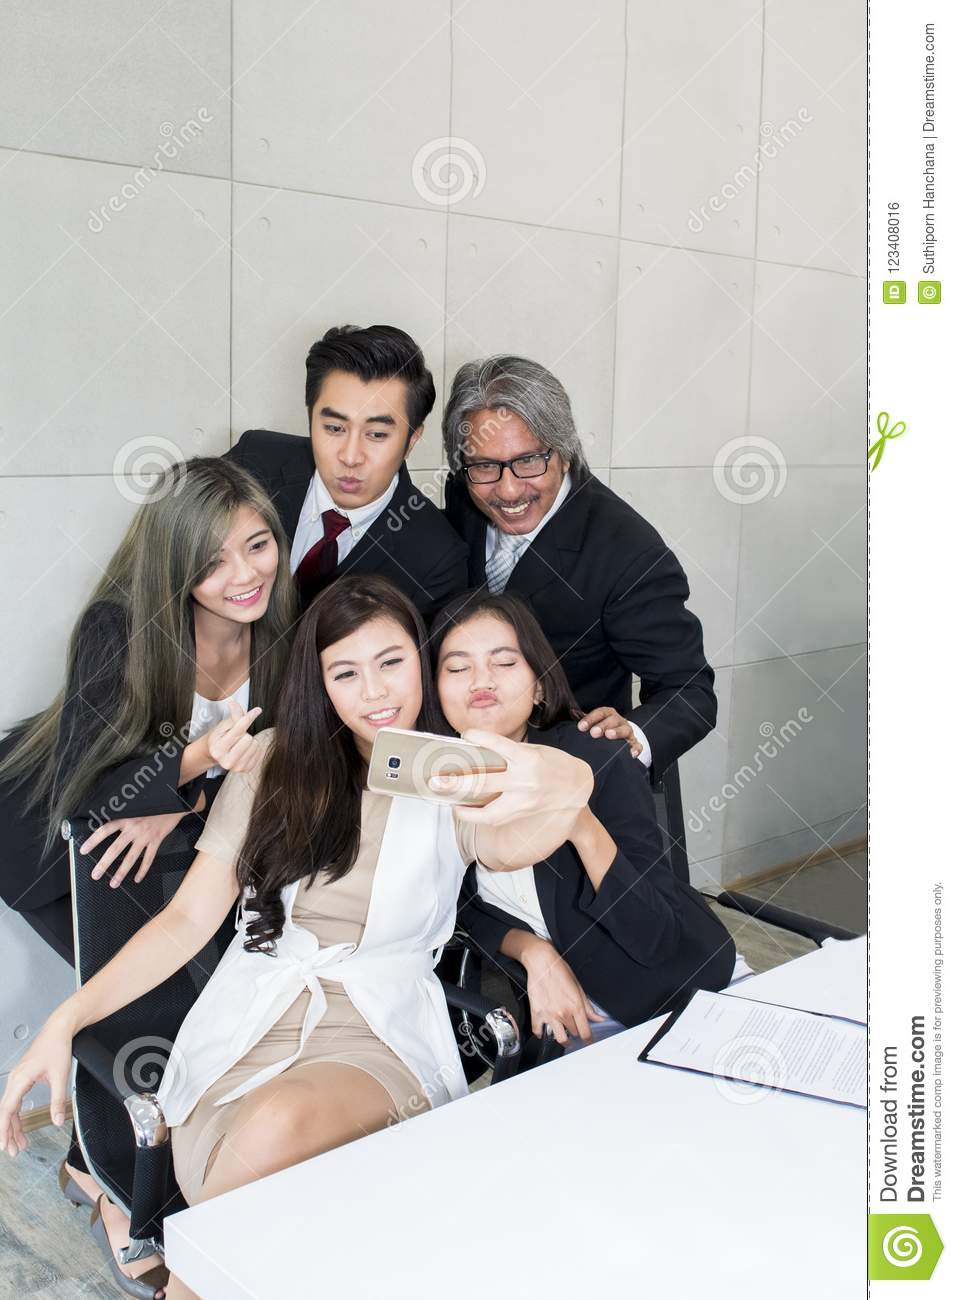 Business people make selfie photo and smiling.